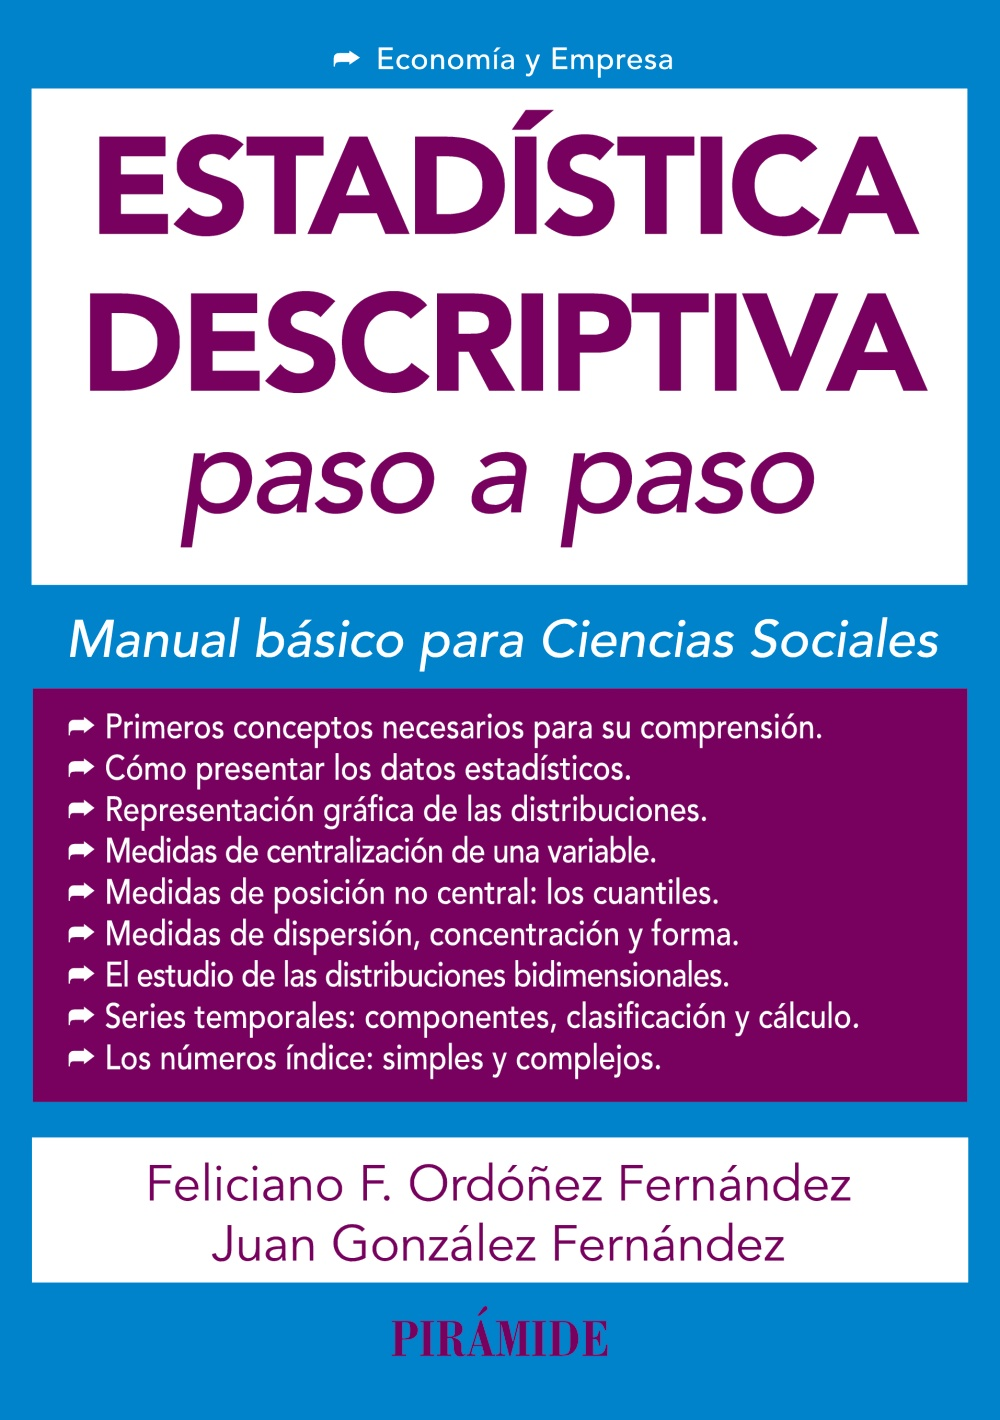 Estadística descriptiva paso a paso